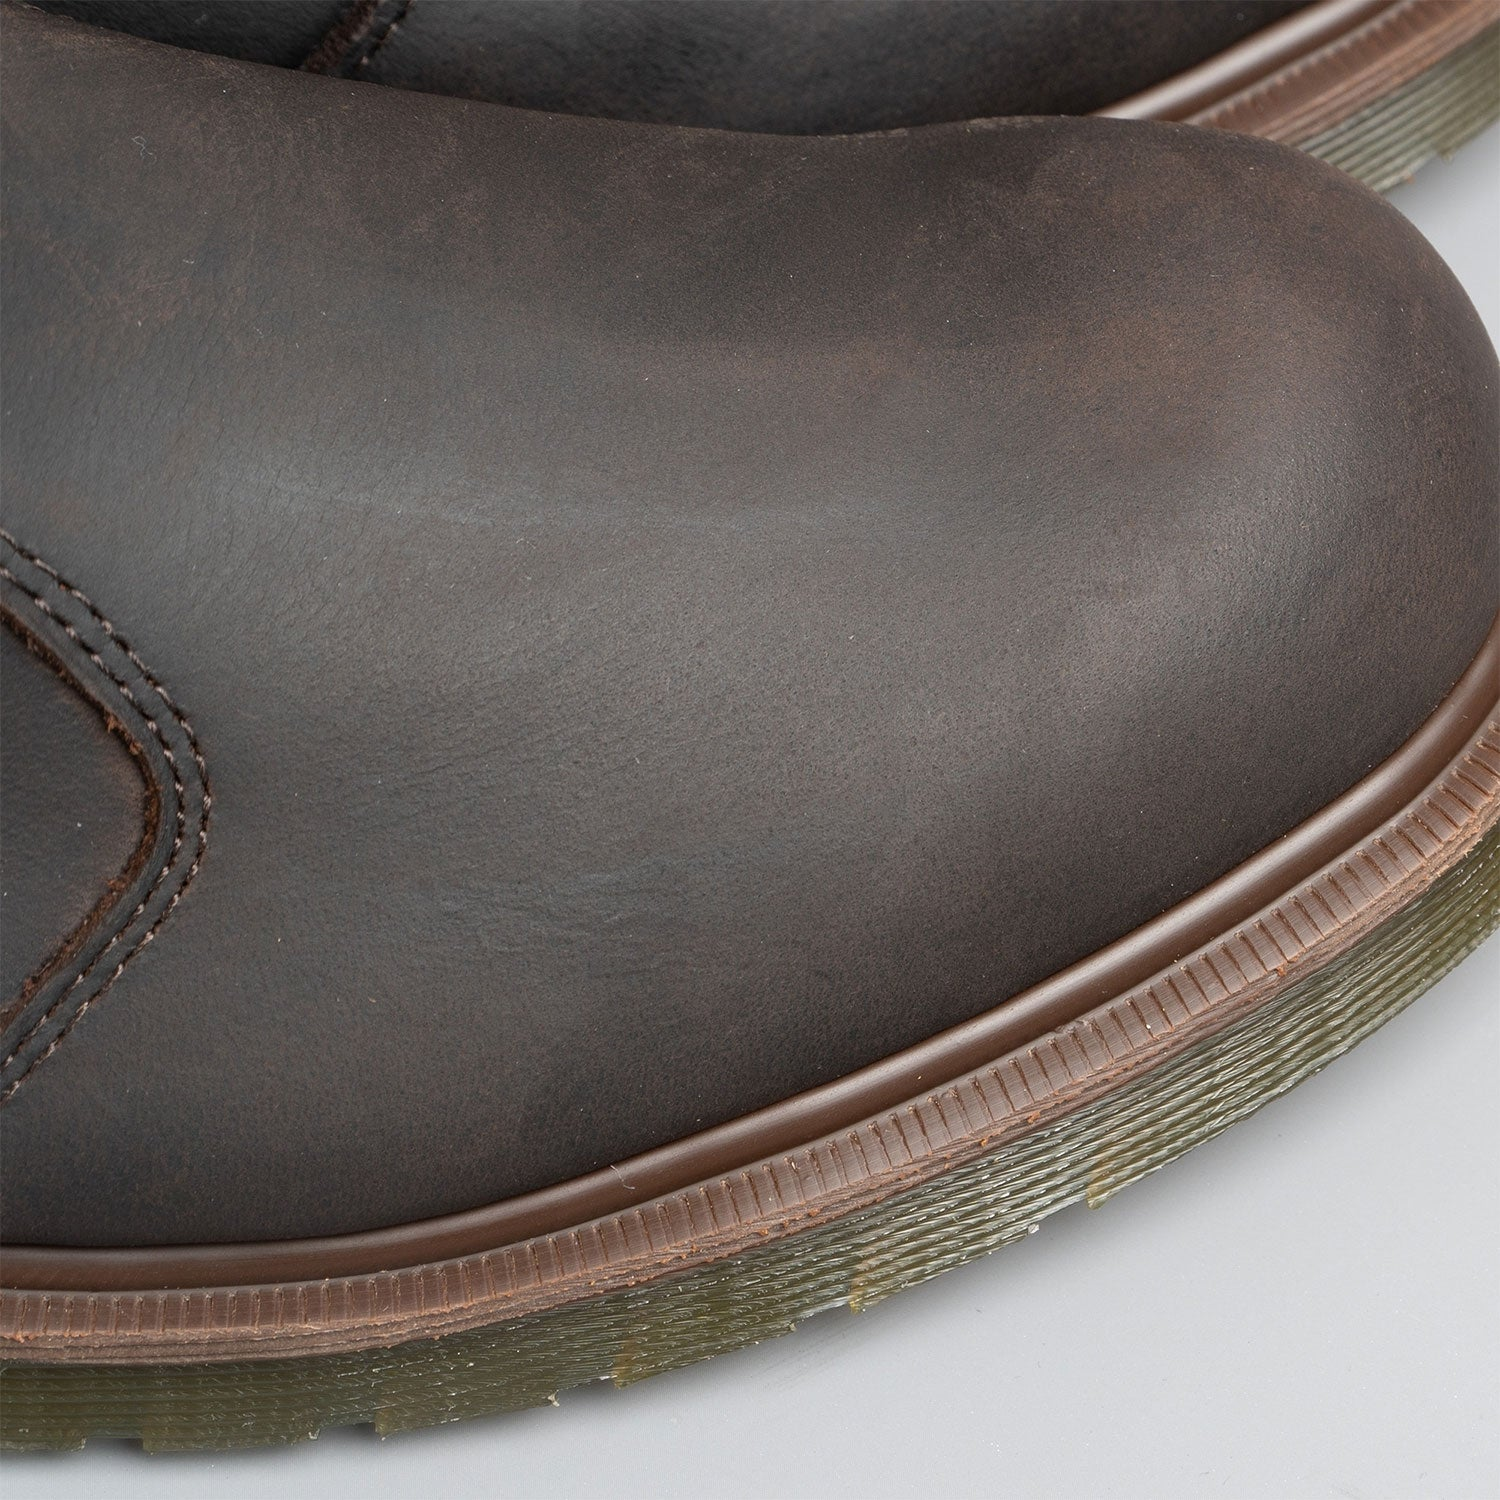 the Goodyear Welt  attaches the airwair sole to the leather upper